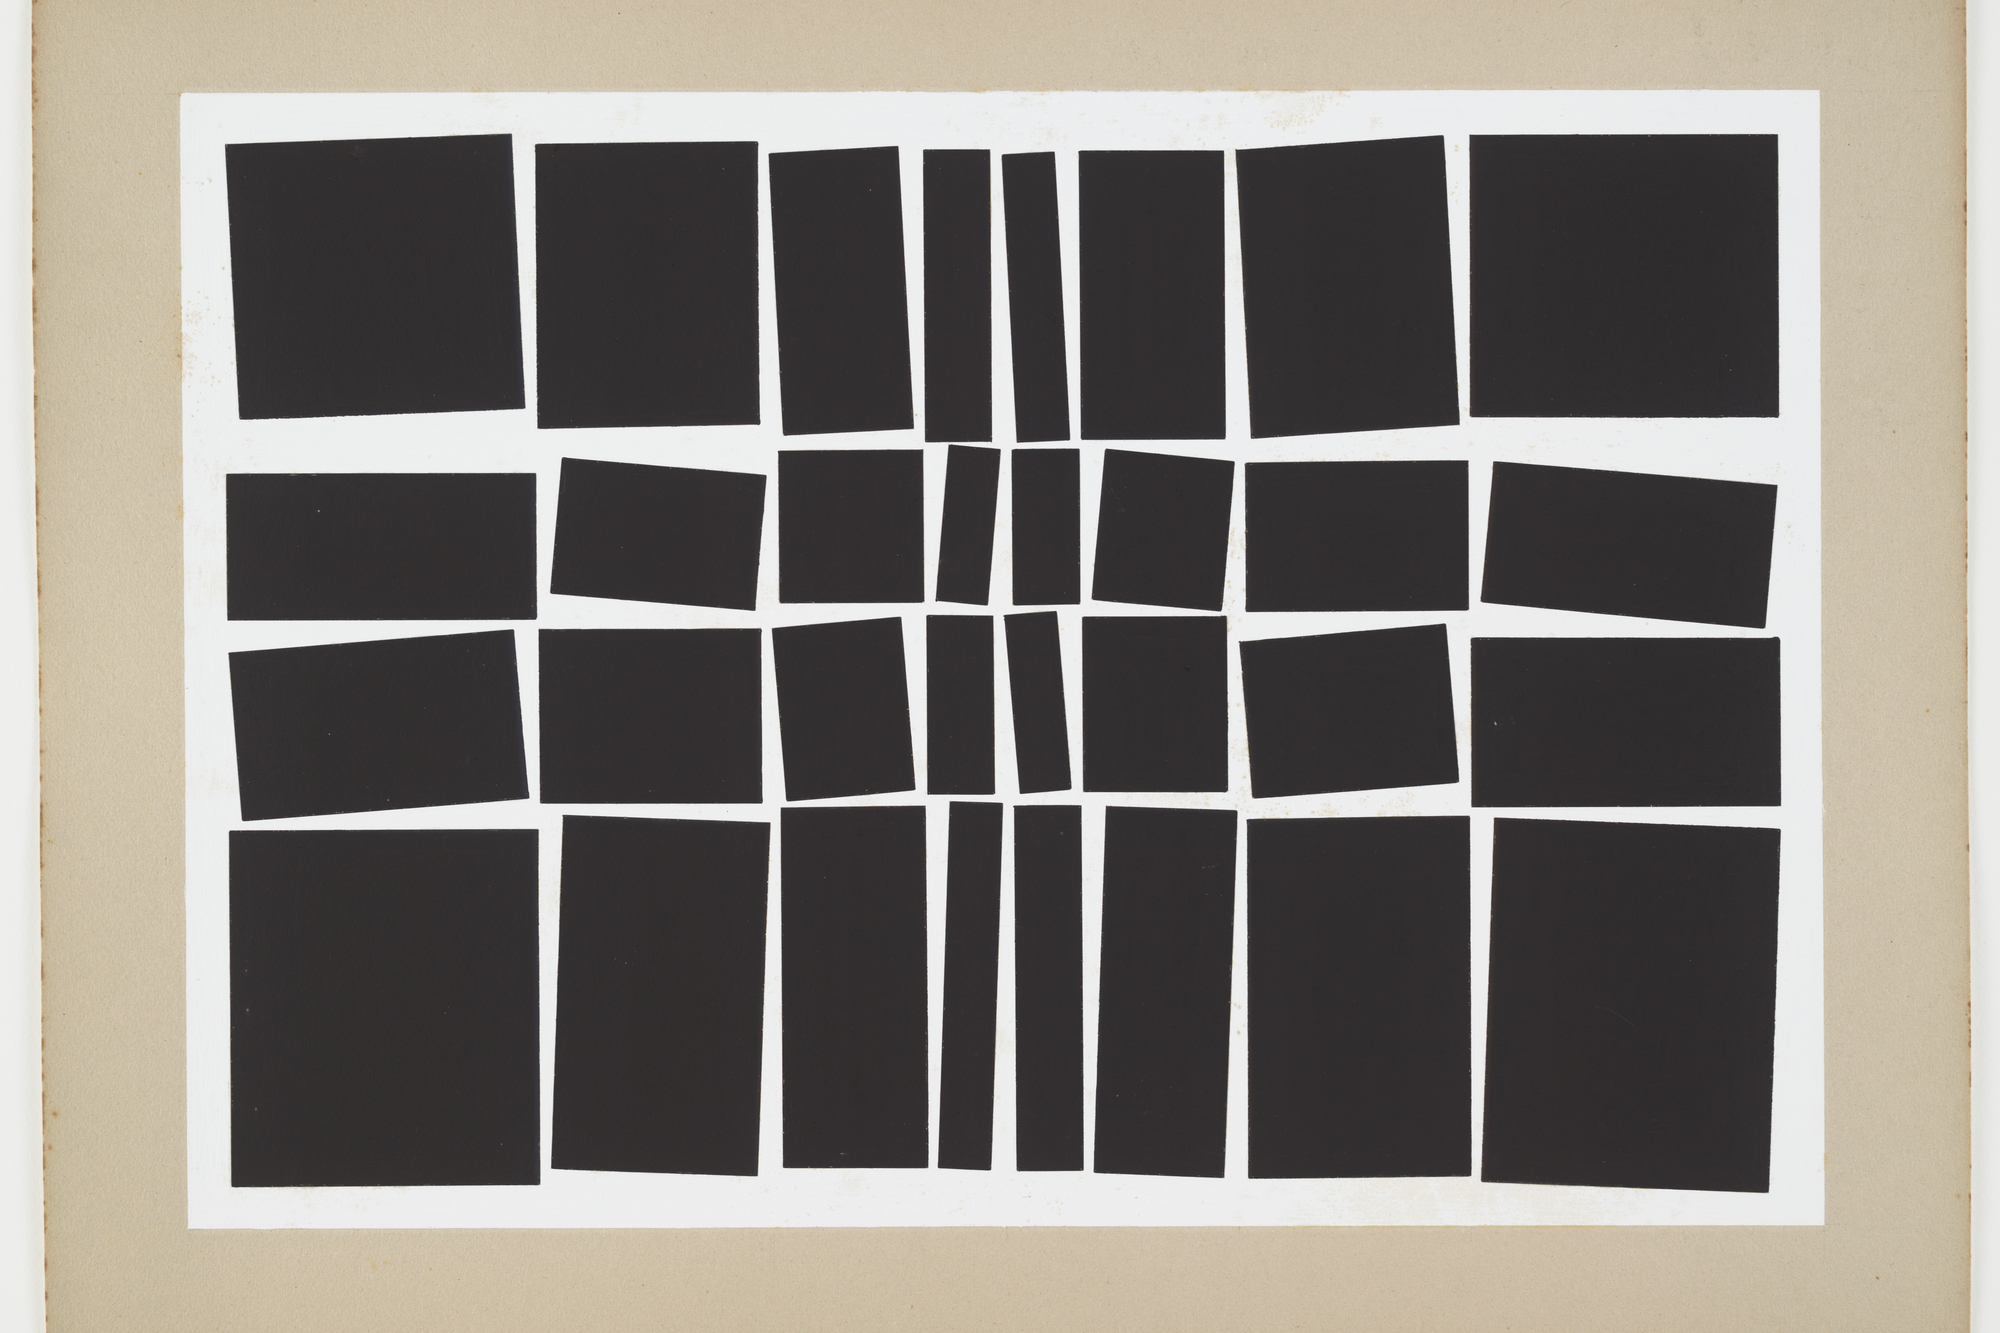 Hélio Oiticica. Metaesquema. 1959. Gouache on board. 19 7/8 × 26 3/4″ (50.5 × 68 cm). The Museum of Modern Art. Purchased with funds given by Patricia Phelps de Cisneros in honor of Paulo Herkenhoff, 1997. © 2008 Projeto Hélio Oiticica